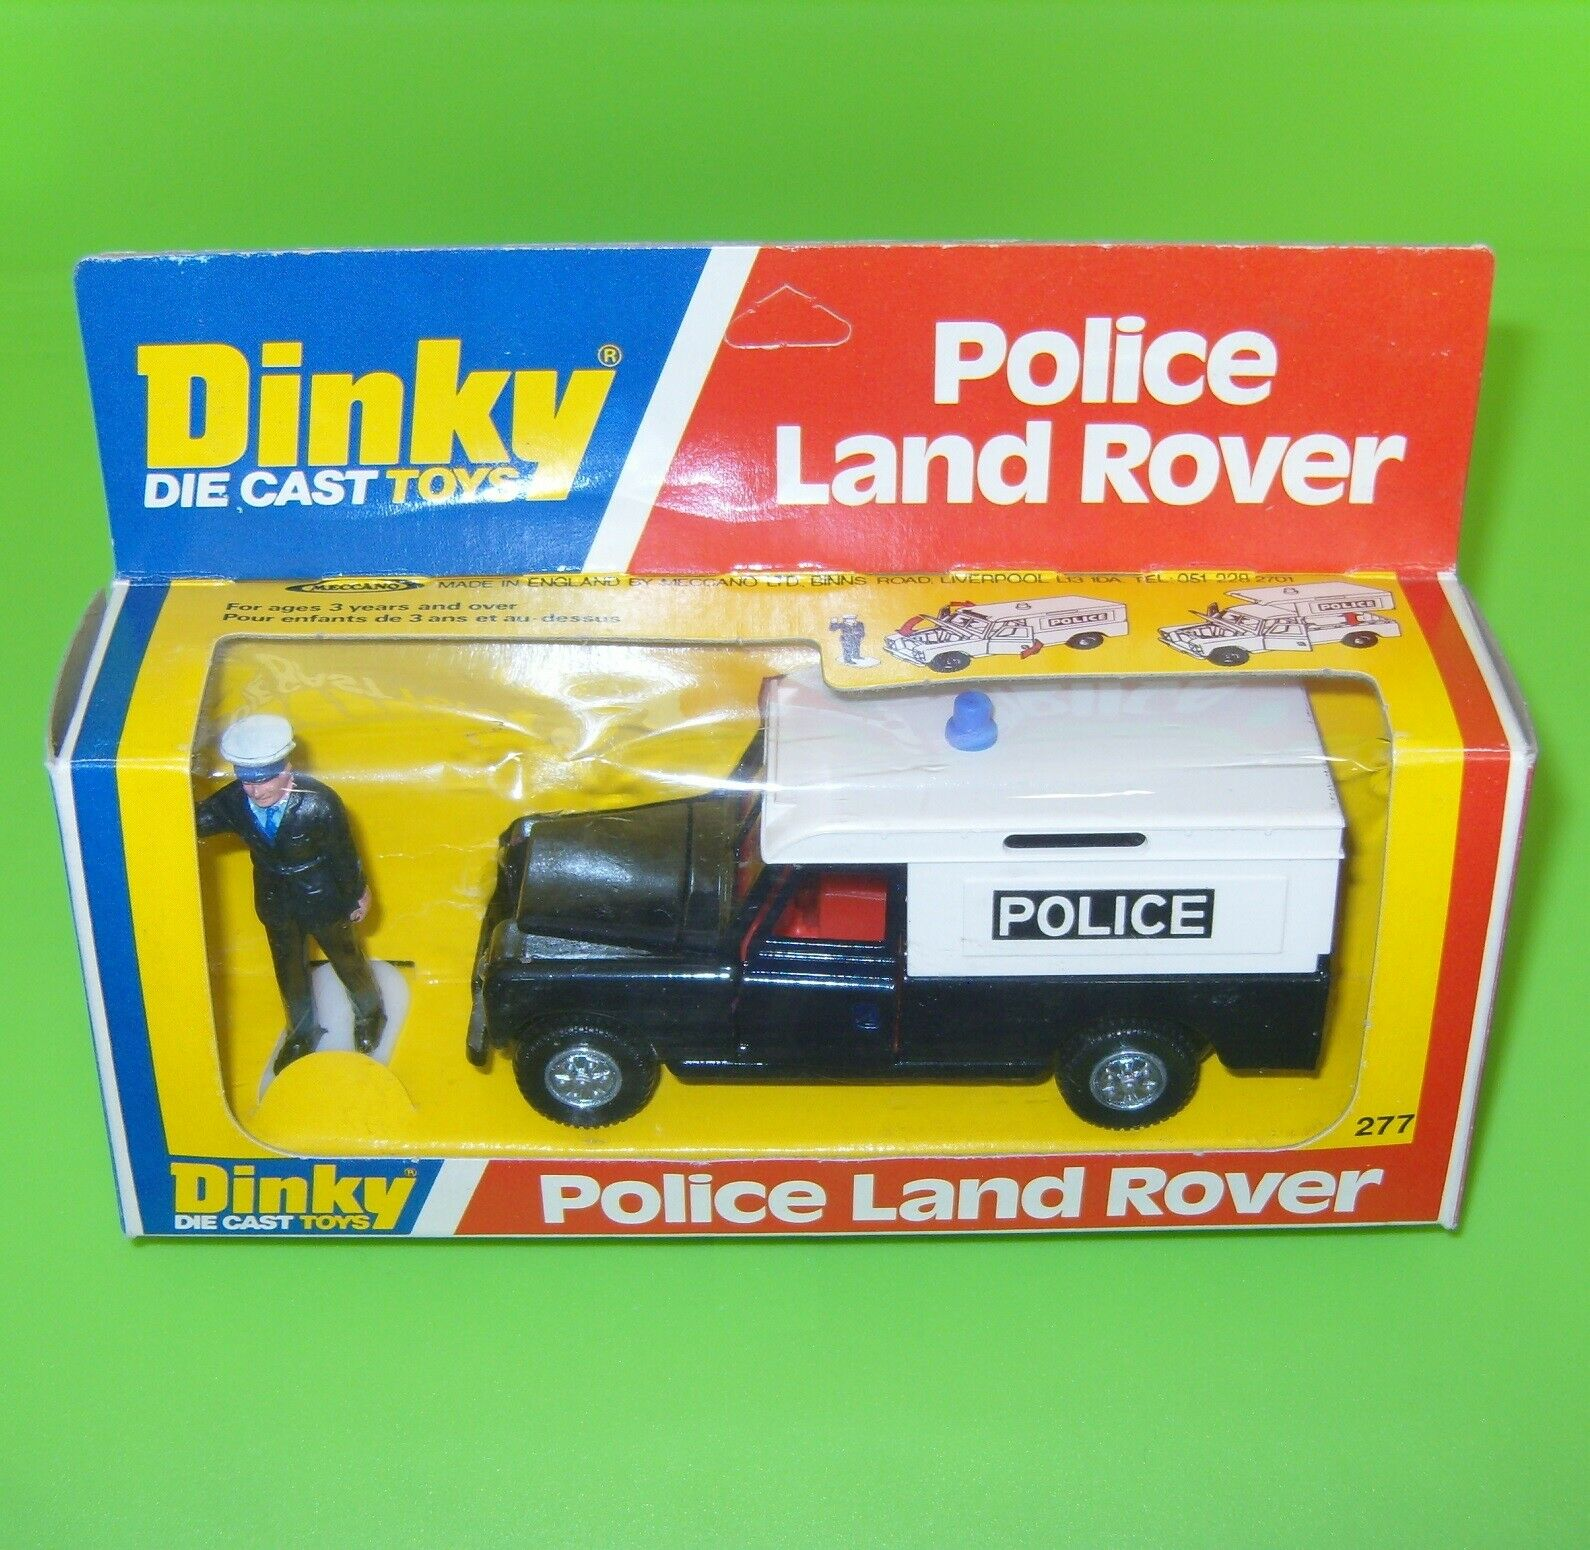 DINKY 277 POLICE Land Rover boxed